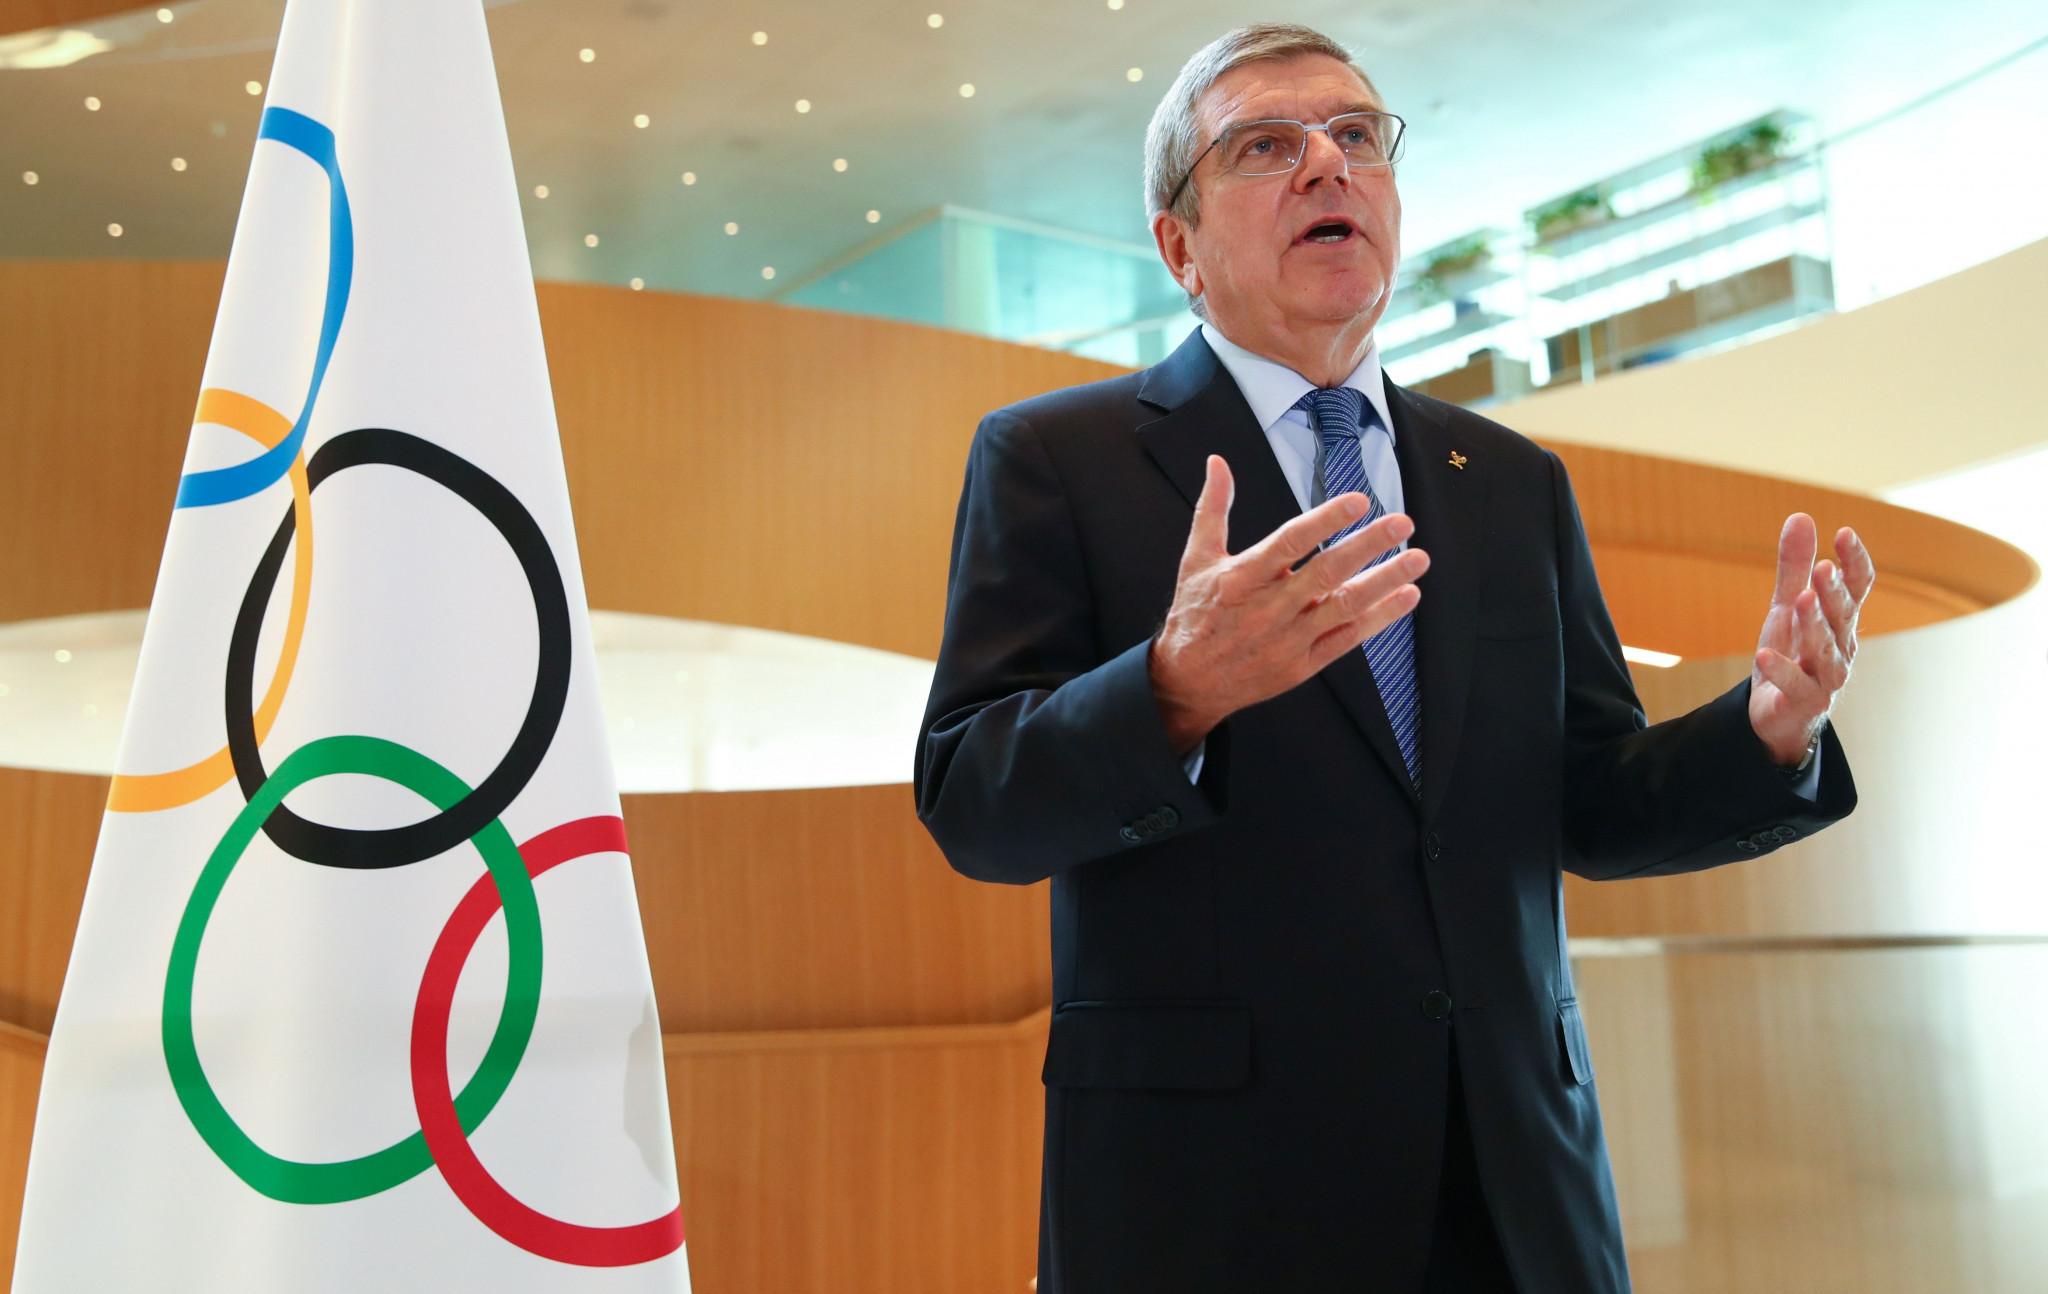 Bach says phased return of sport a cause for